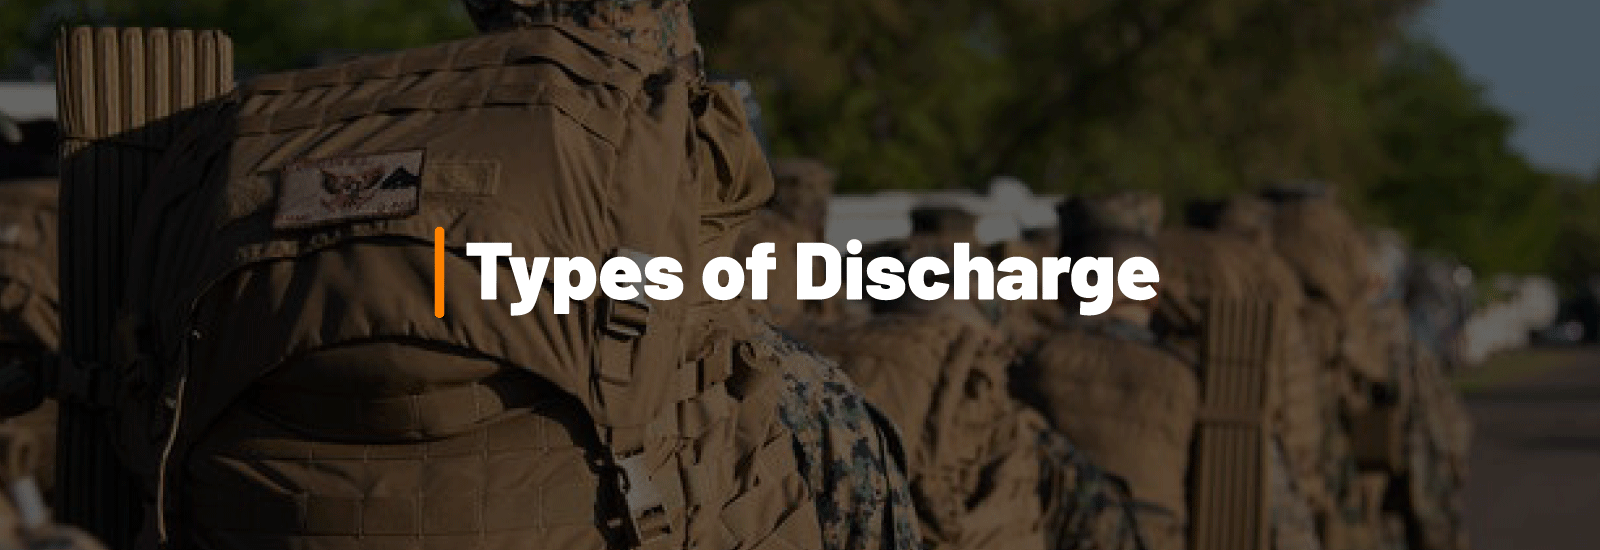 Types of Discharge